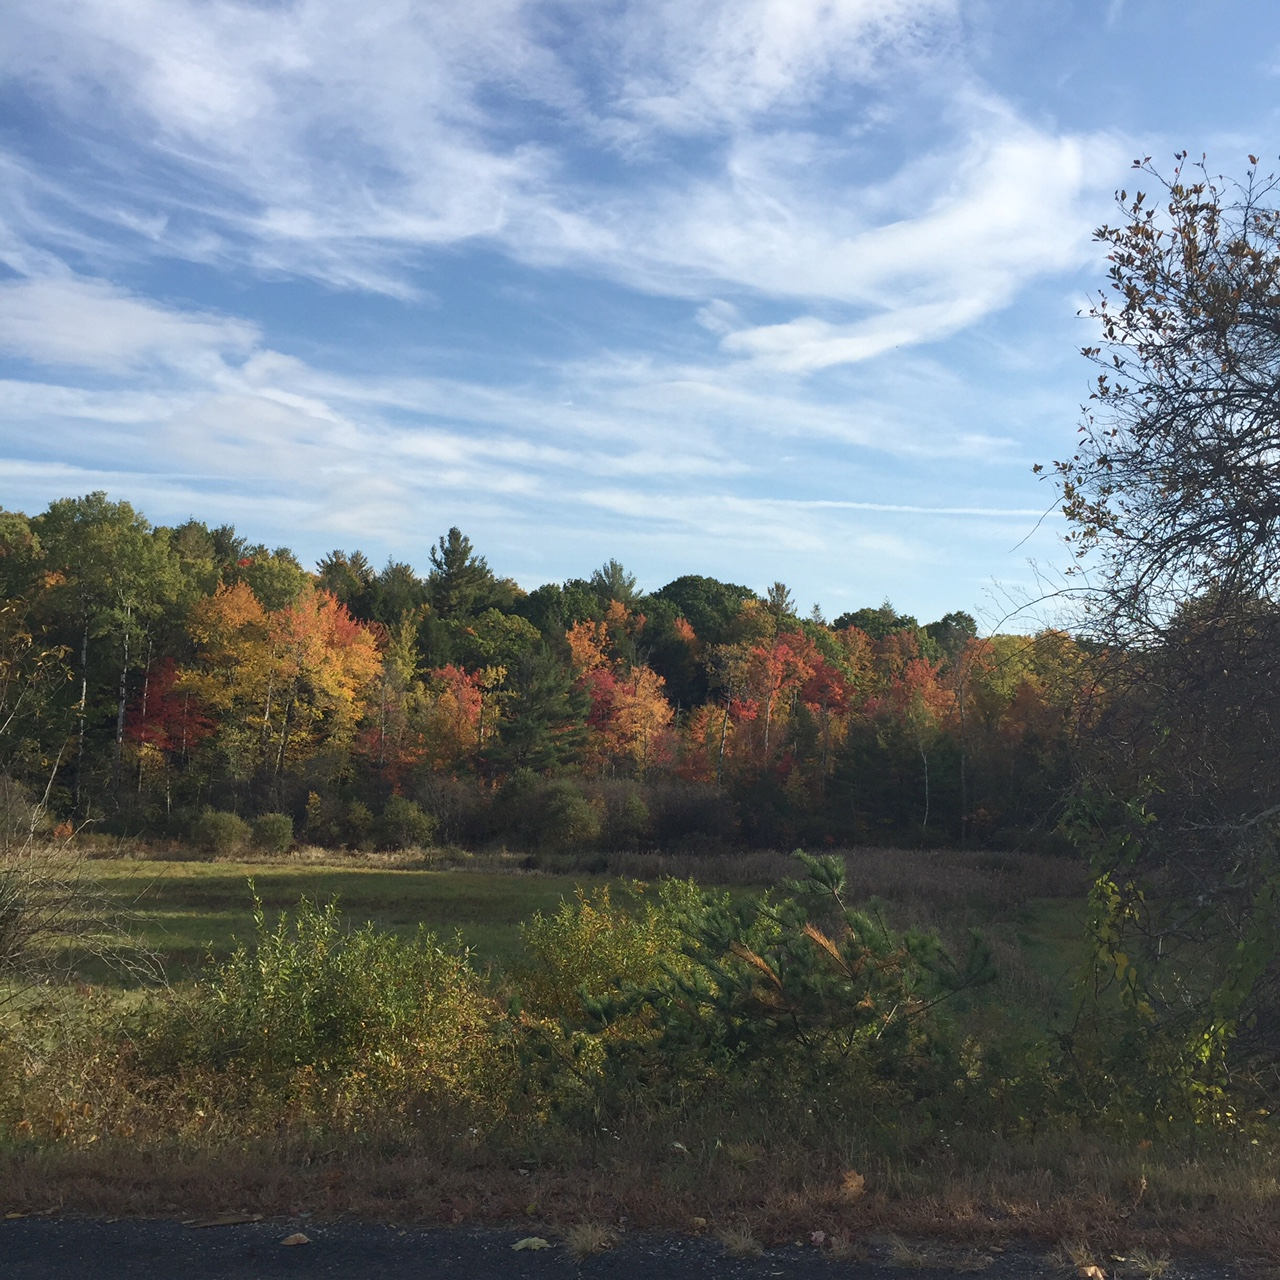 Fall in New England - is anything better?